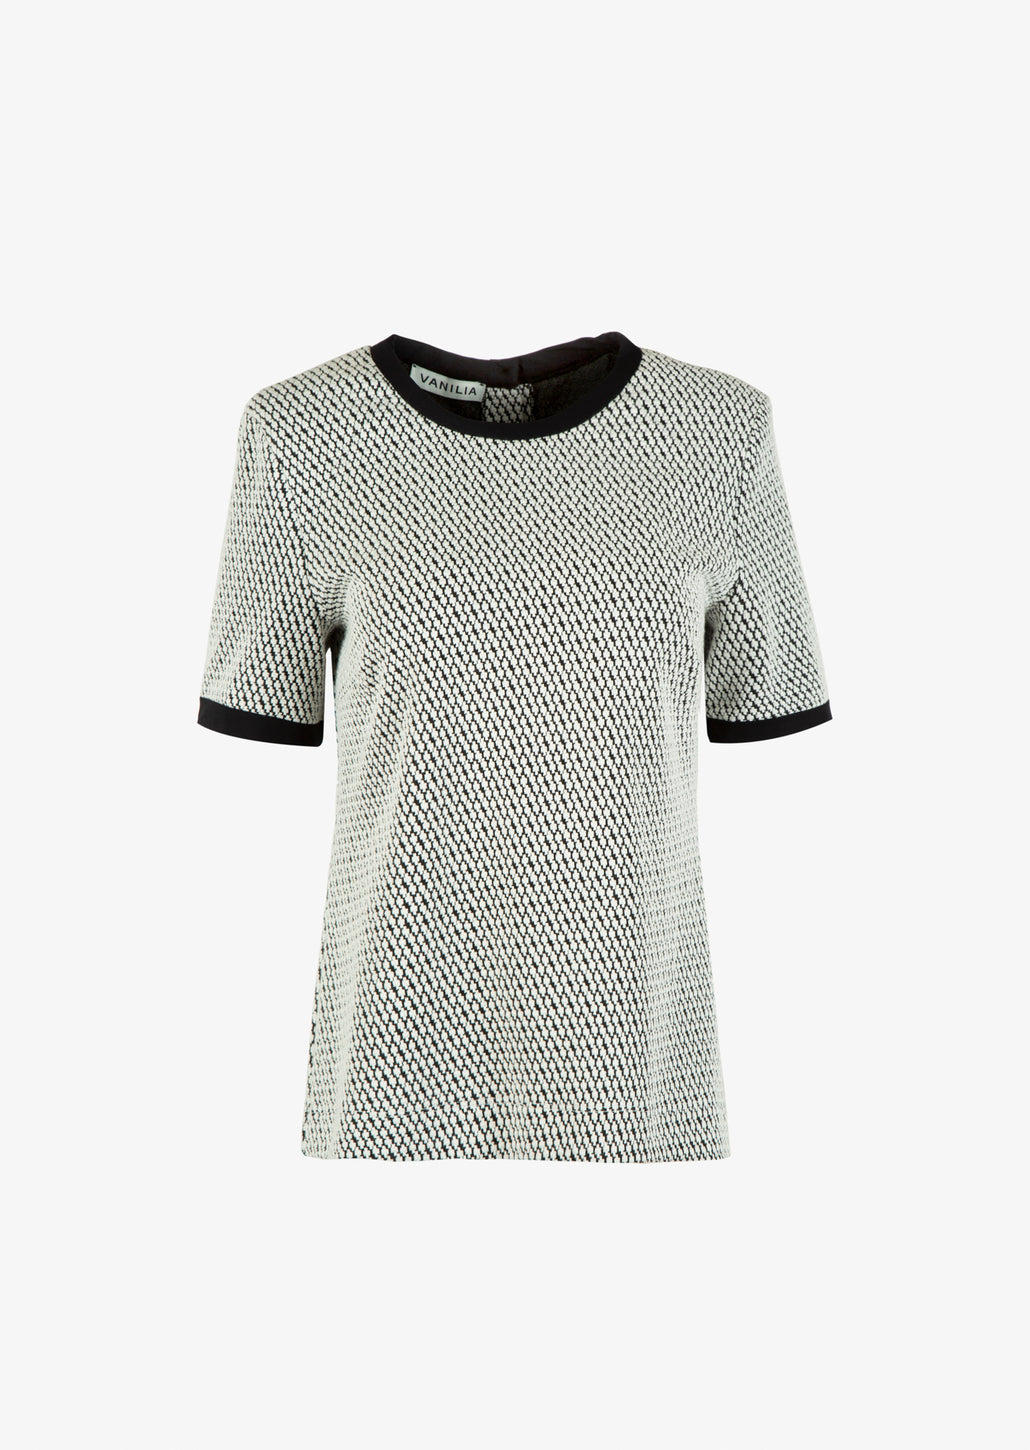 jacquard tricot top met constrasterende band